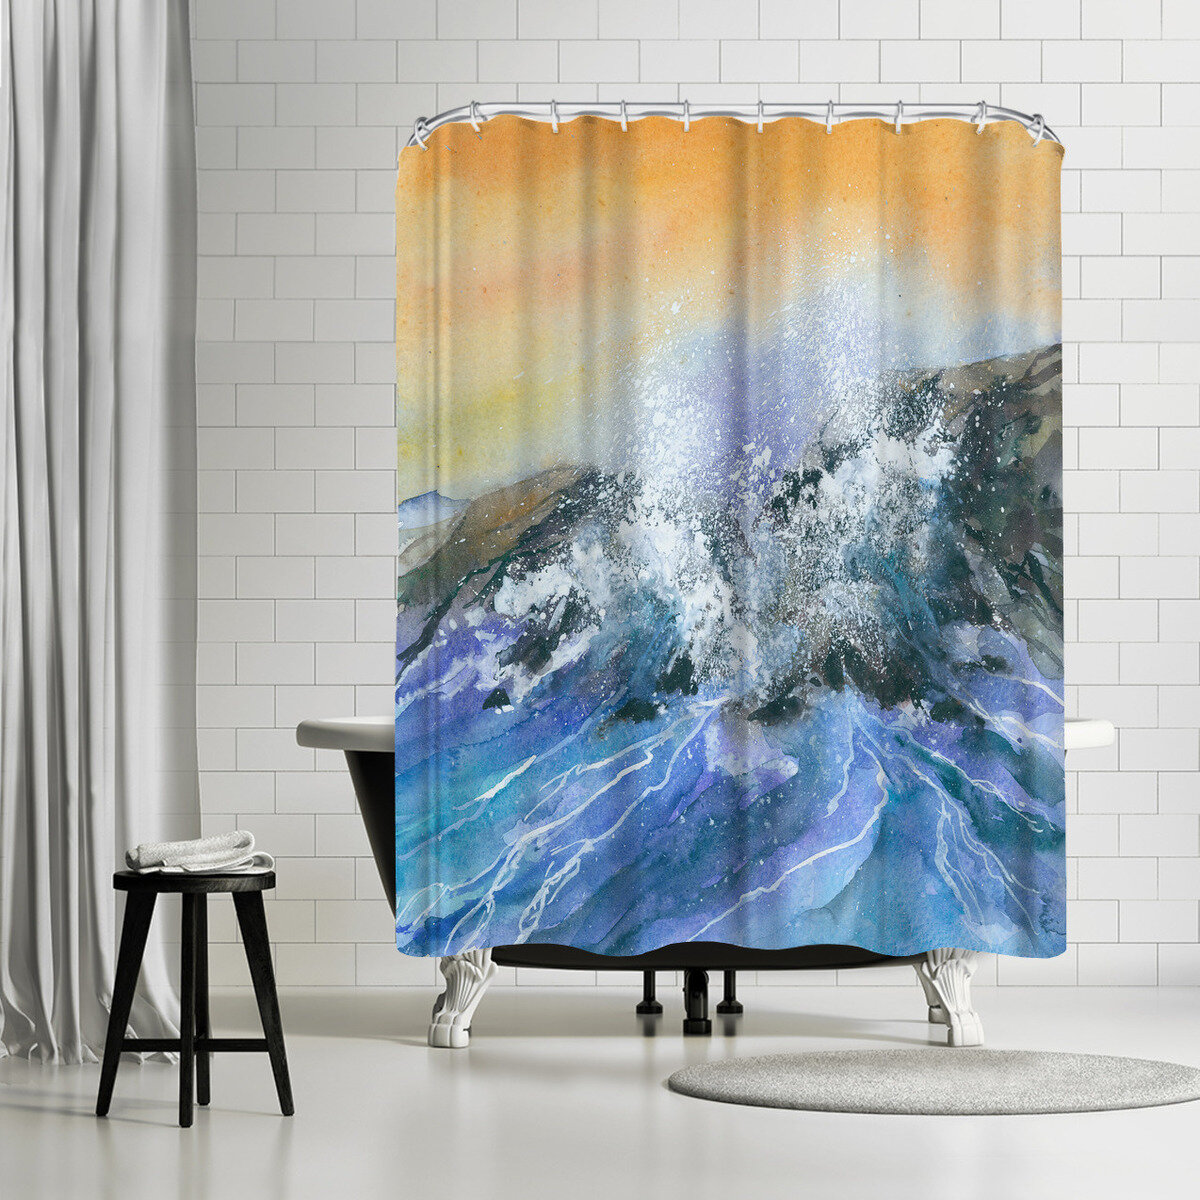 East Urban Home Rachel Mcnaughton Crashing Surf Single Shower Curtain Wayfair